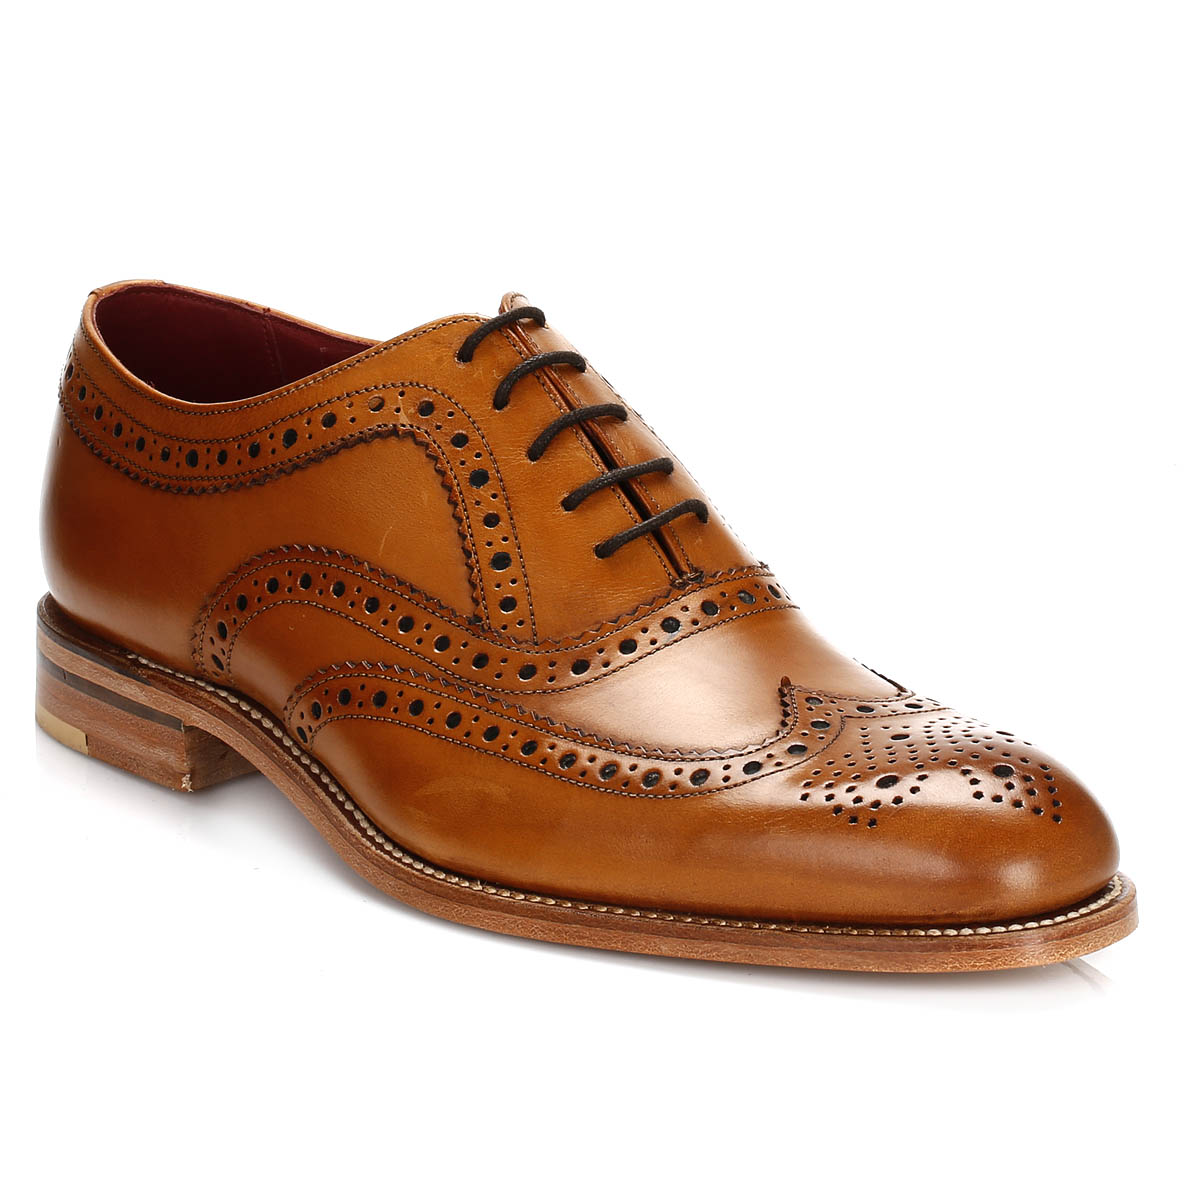 Find great deals on eBay for mens brogue shoes. Shop with confidence.